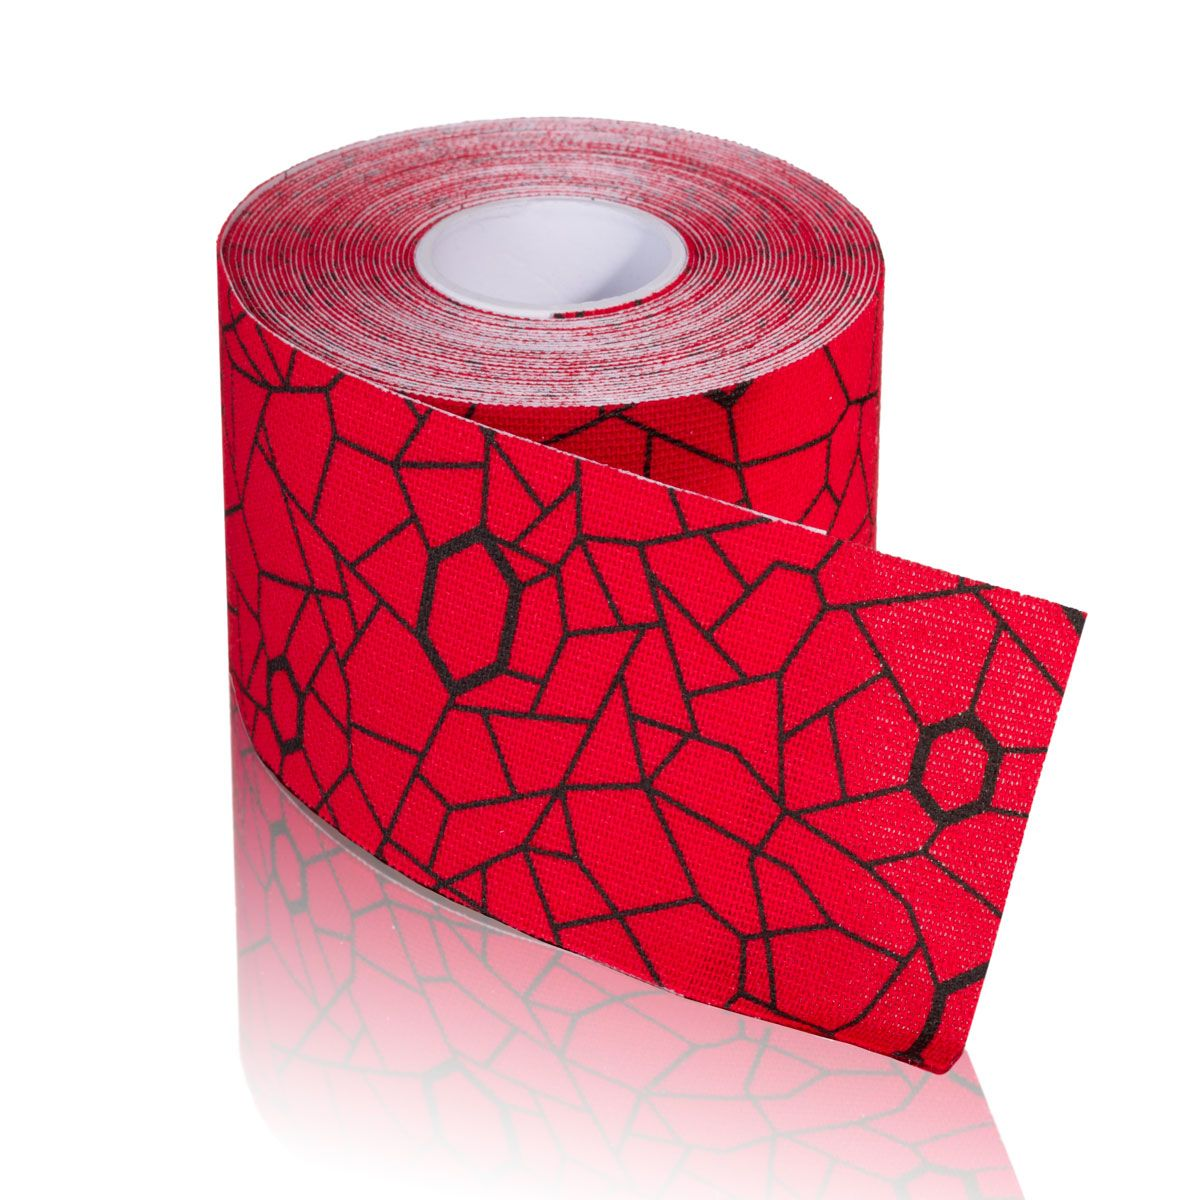 TheraBand Kinesiology Tape - (1) 2 in. x 16.4 ft. Roll - Red/Black